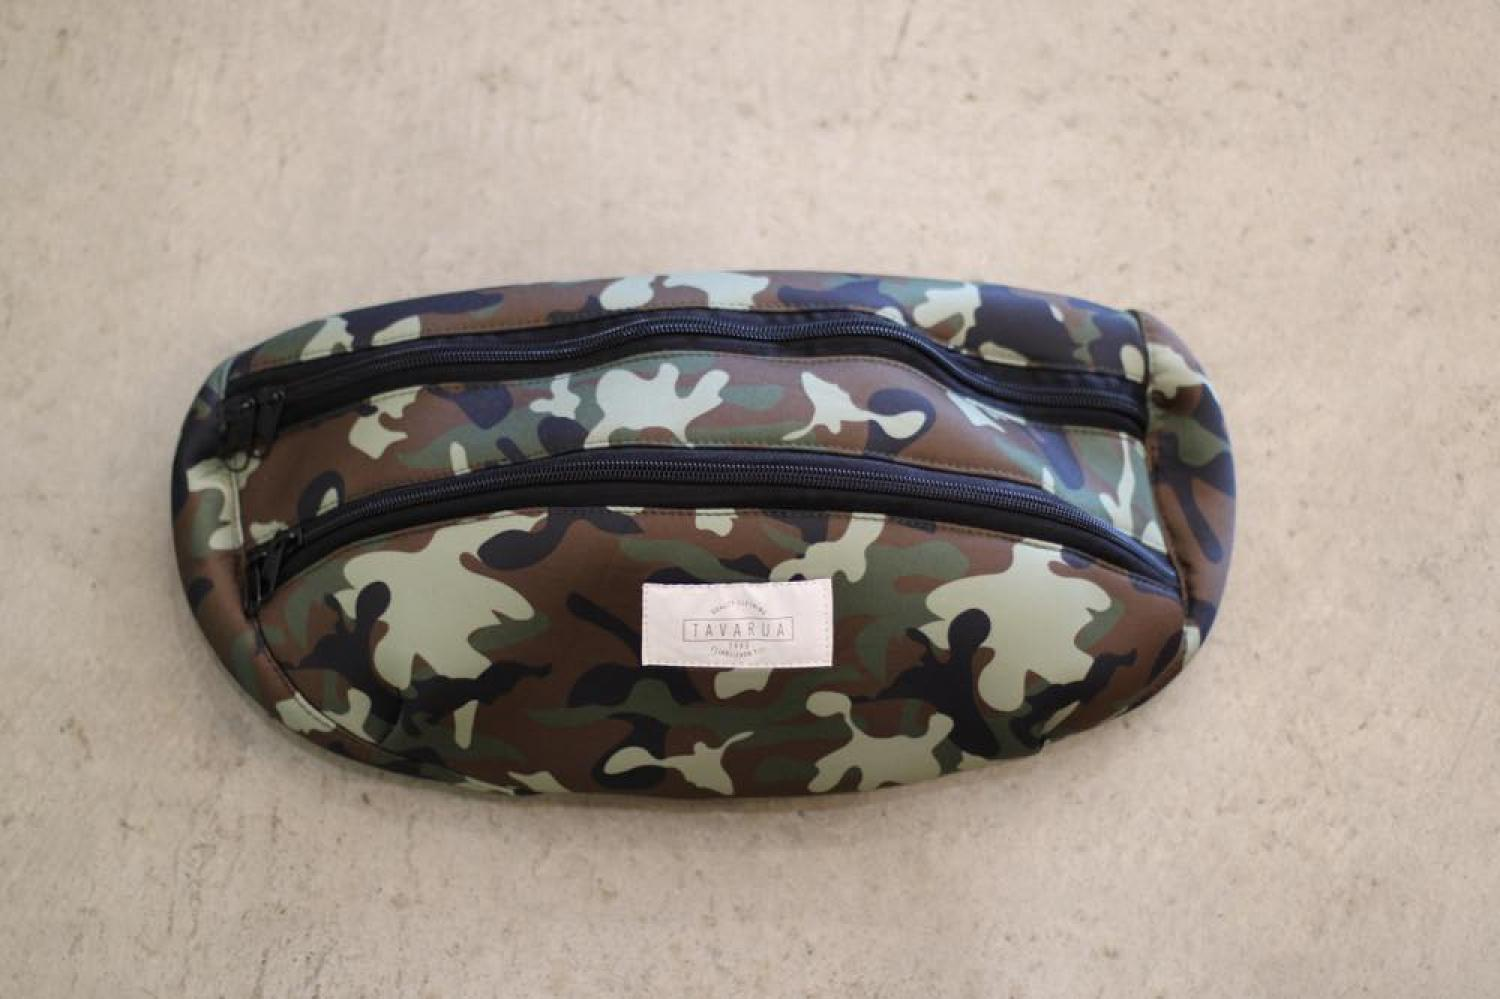 【TAVARUA】Surf bag large GREEN-CAMO